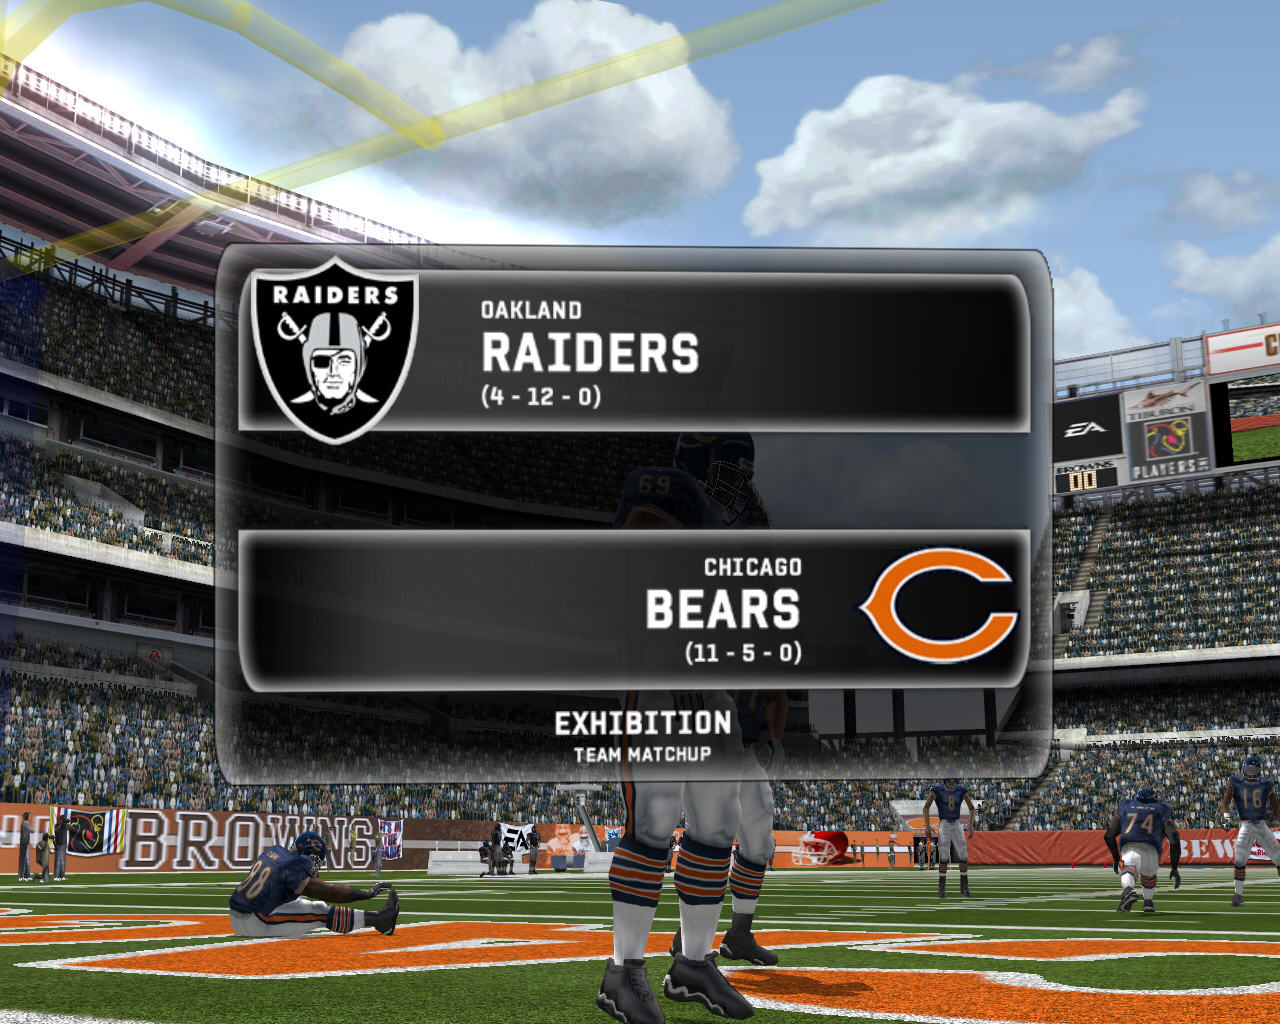 Madden NFL 07 Windows Oakland Raiders vs. Chicago Bears